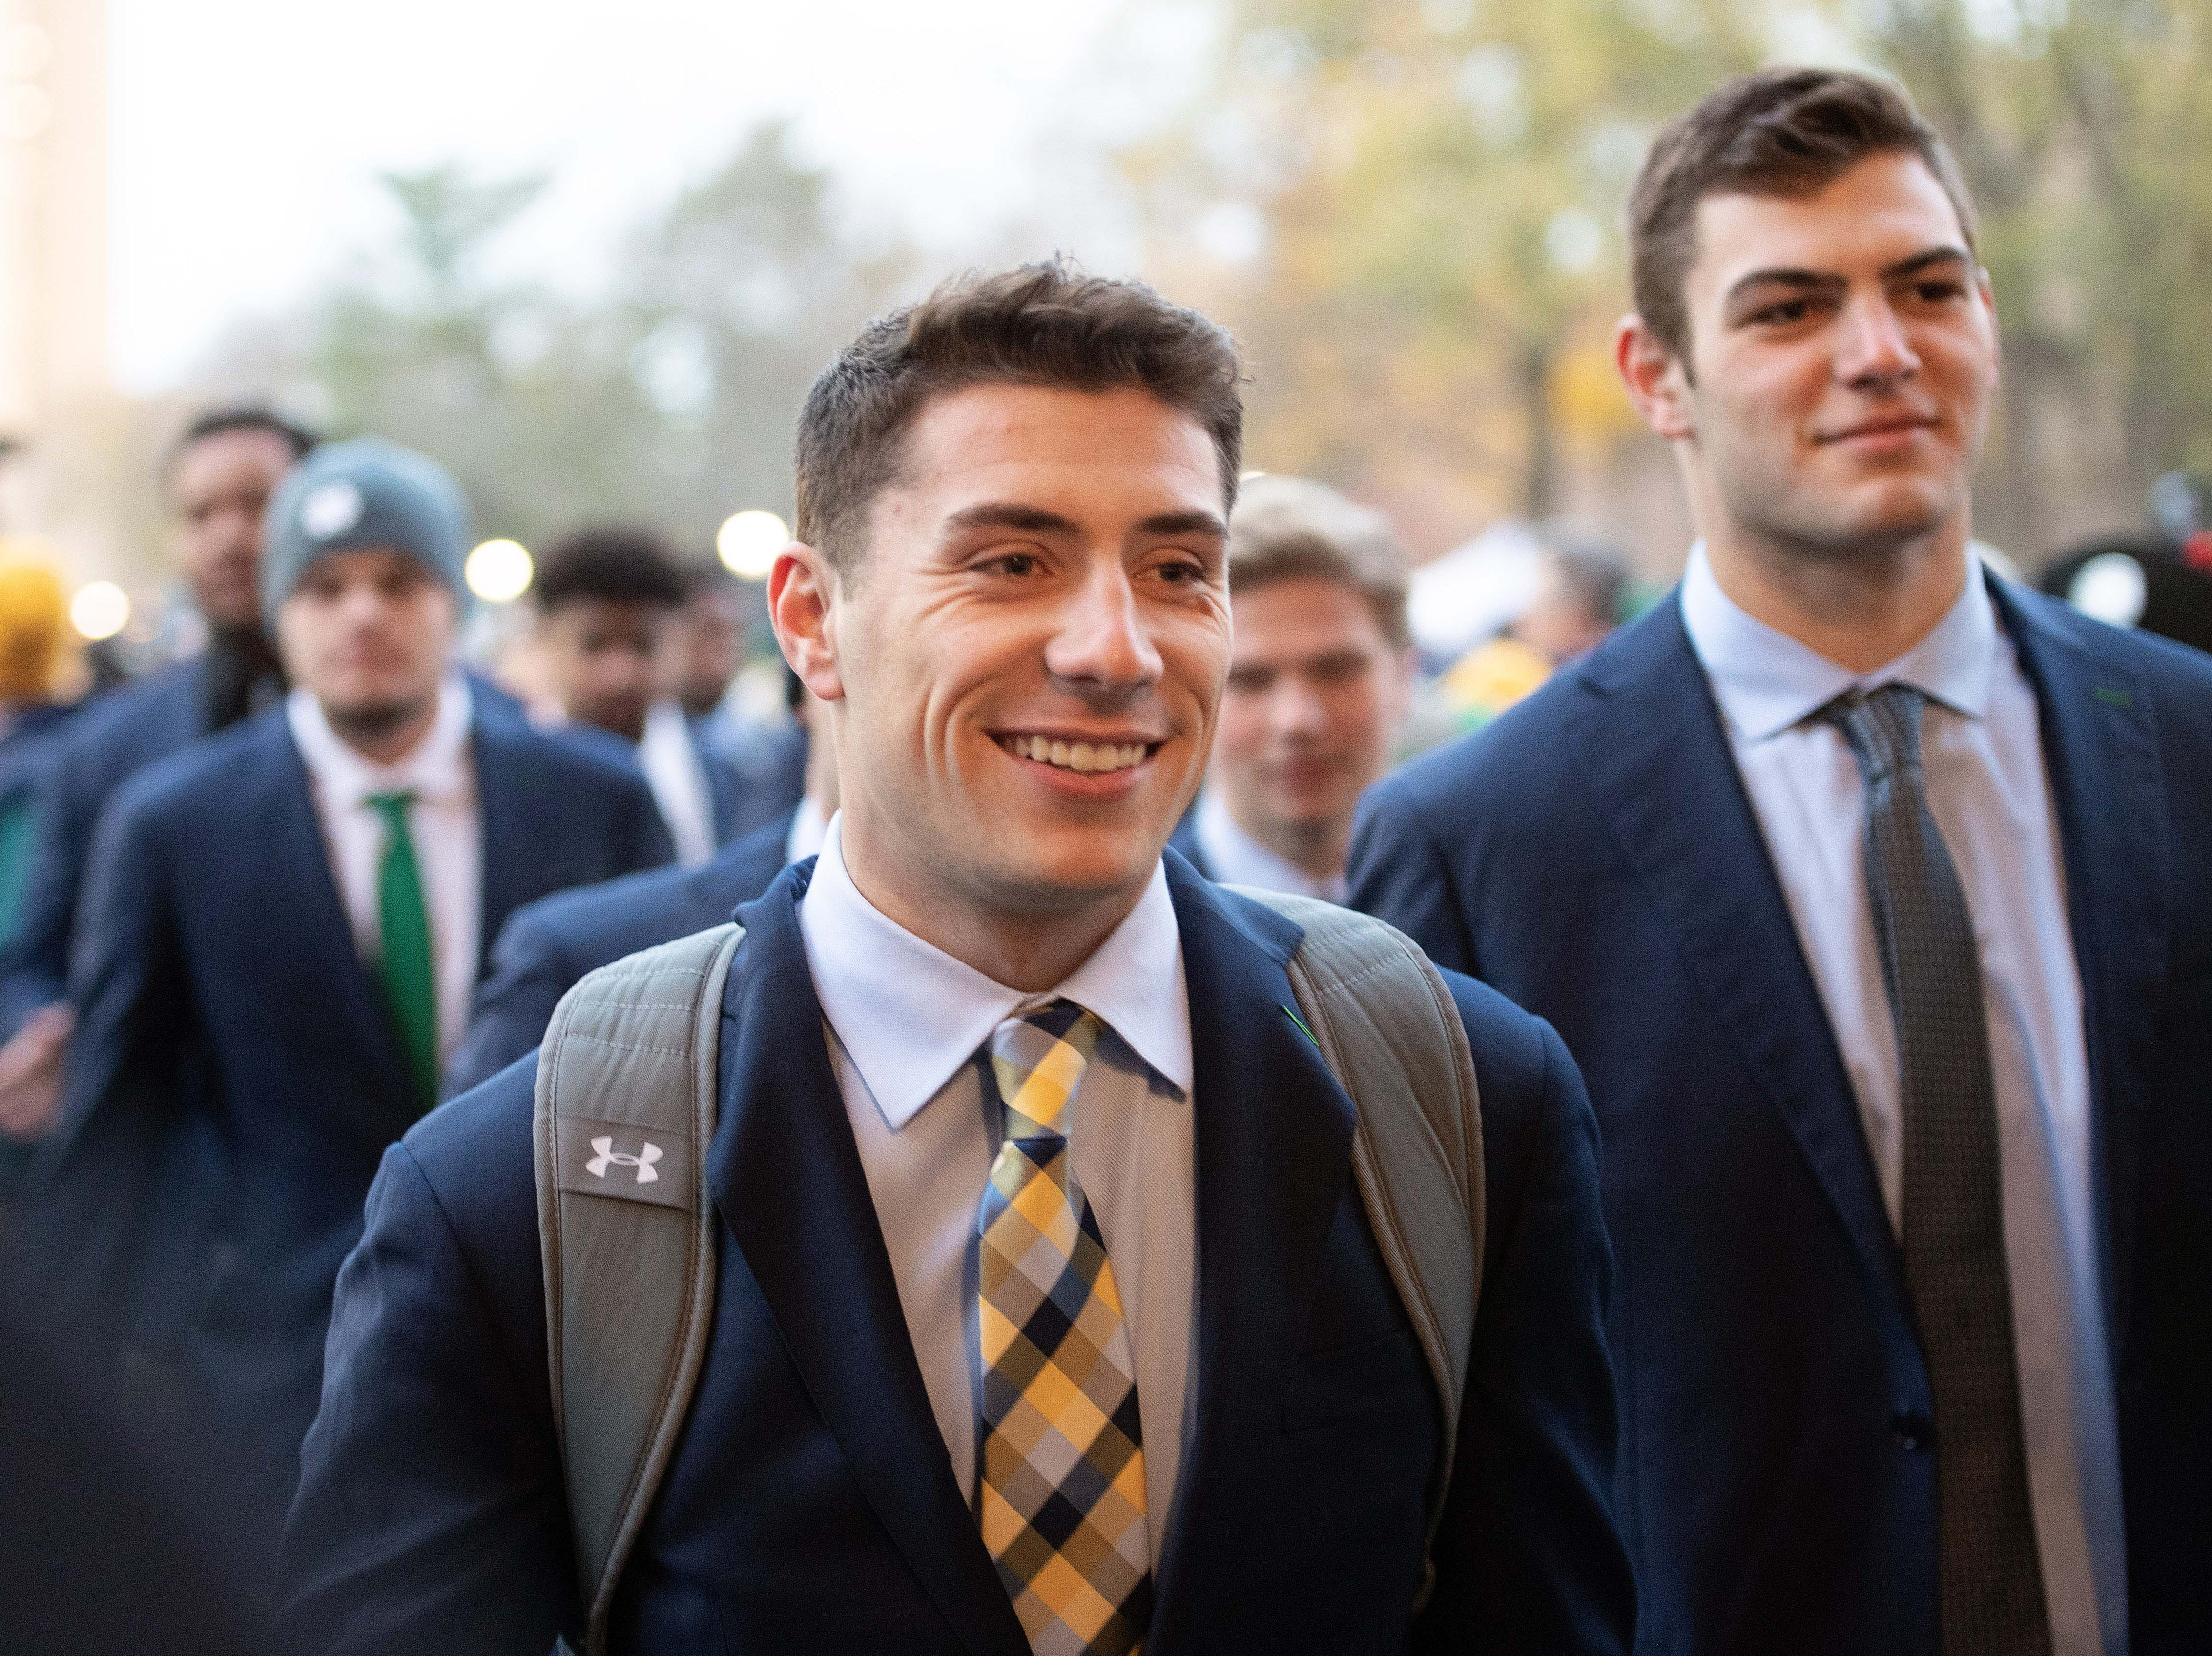 Nov 10, 2018; South Bend, IN, USA; Notre Dame Fighting Irish quarterback Ian Book walks in to Notre Dame Stadium before the game against the Florida State Seminoles. Mandatory Credit: Matt Cashore-USA TODAY Sports